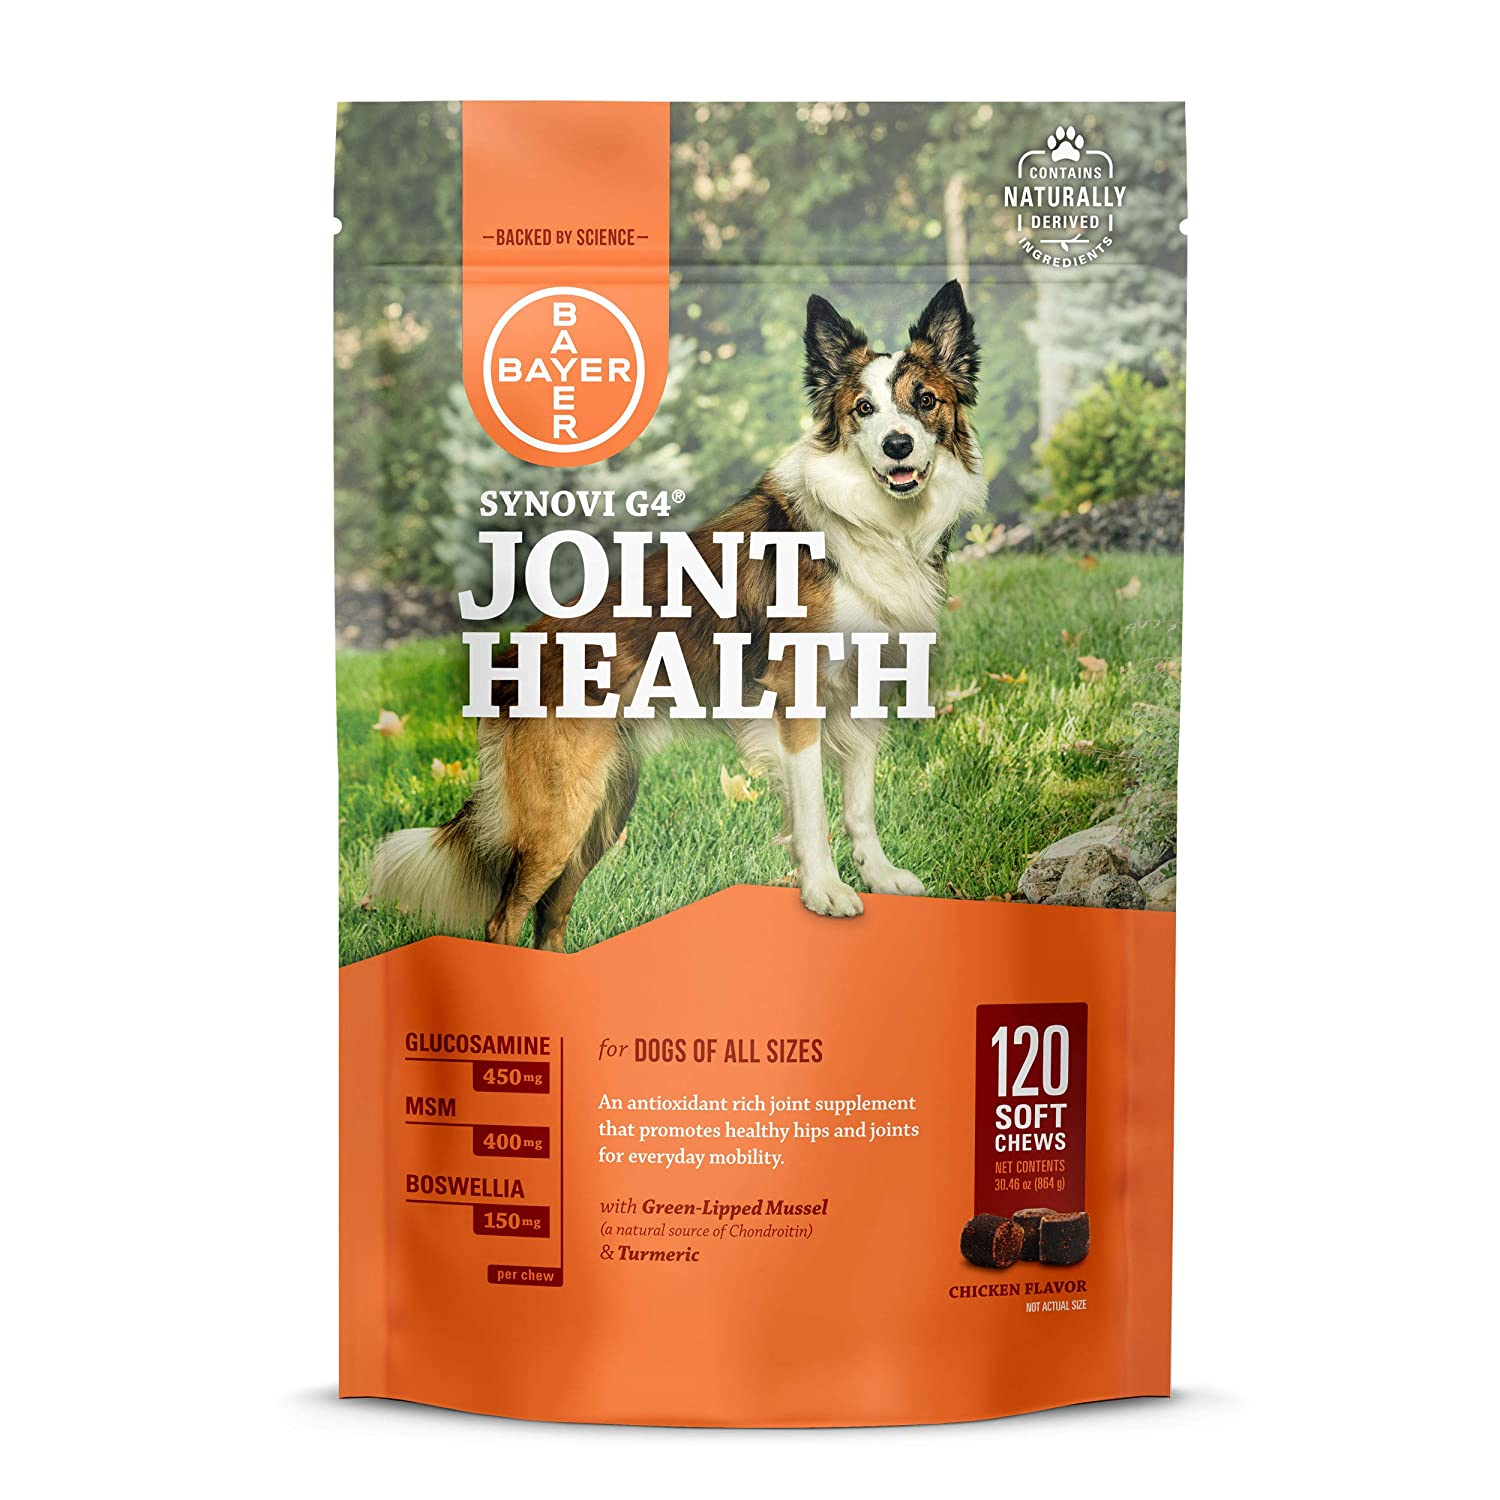 synovi joint health supplement for dogs